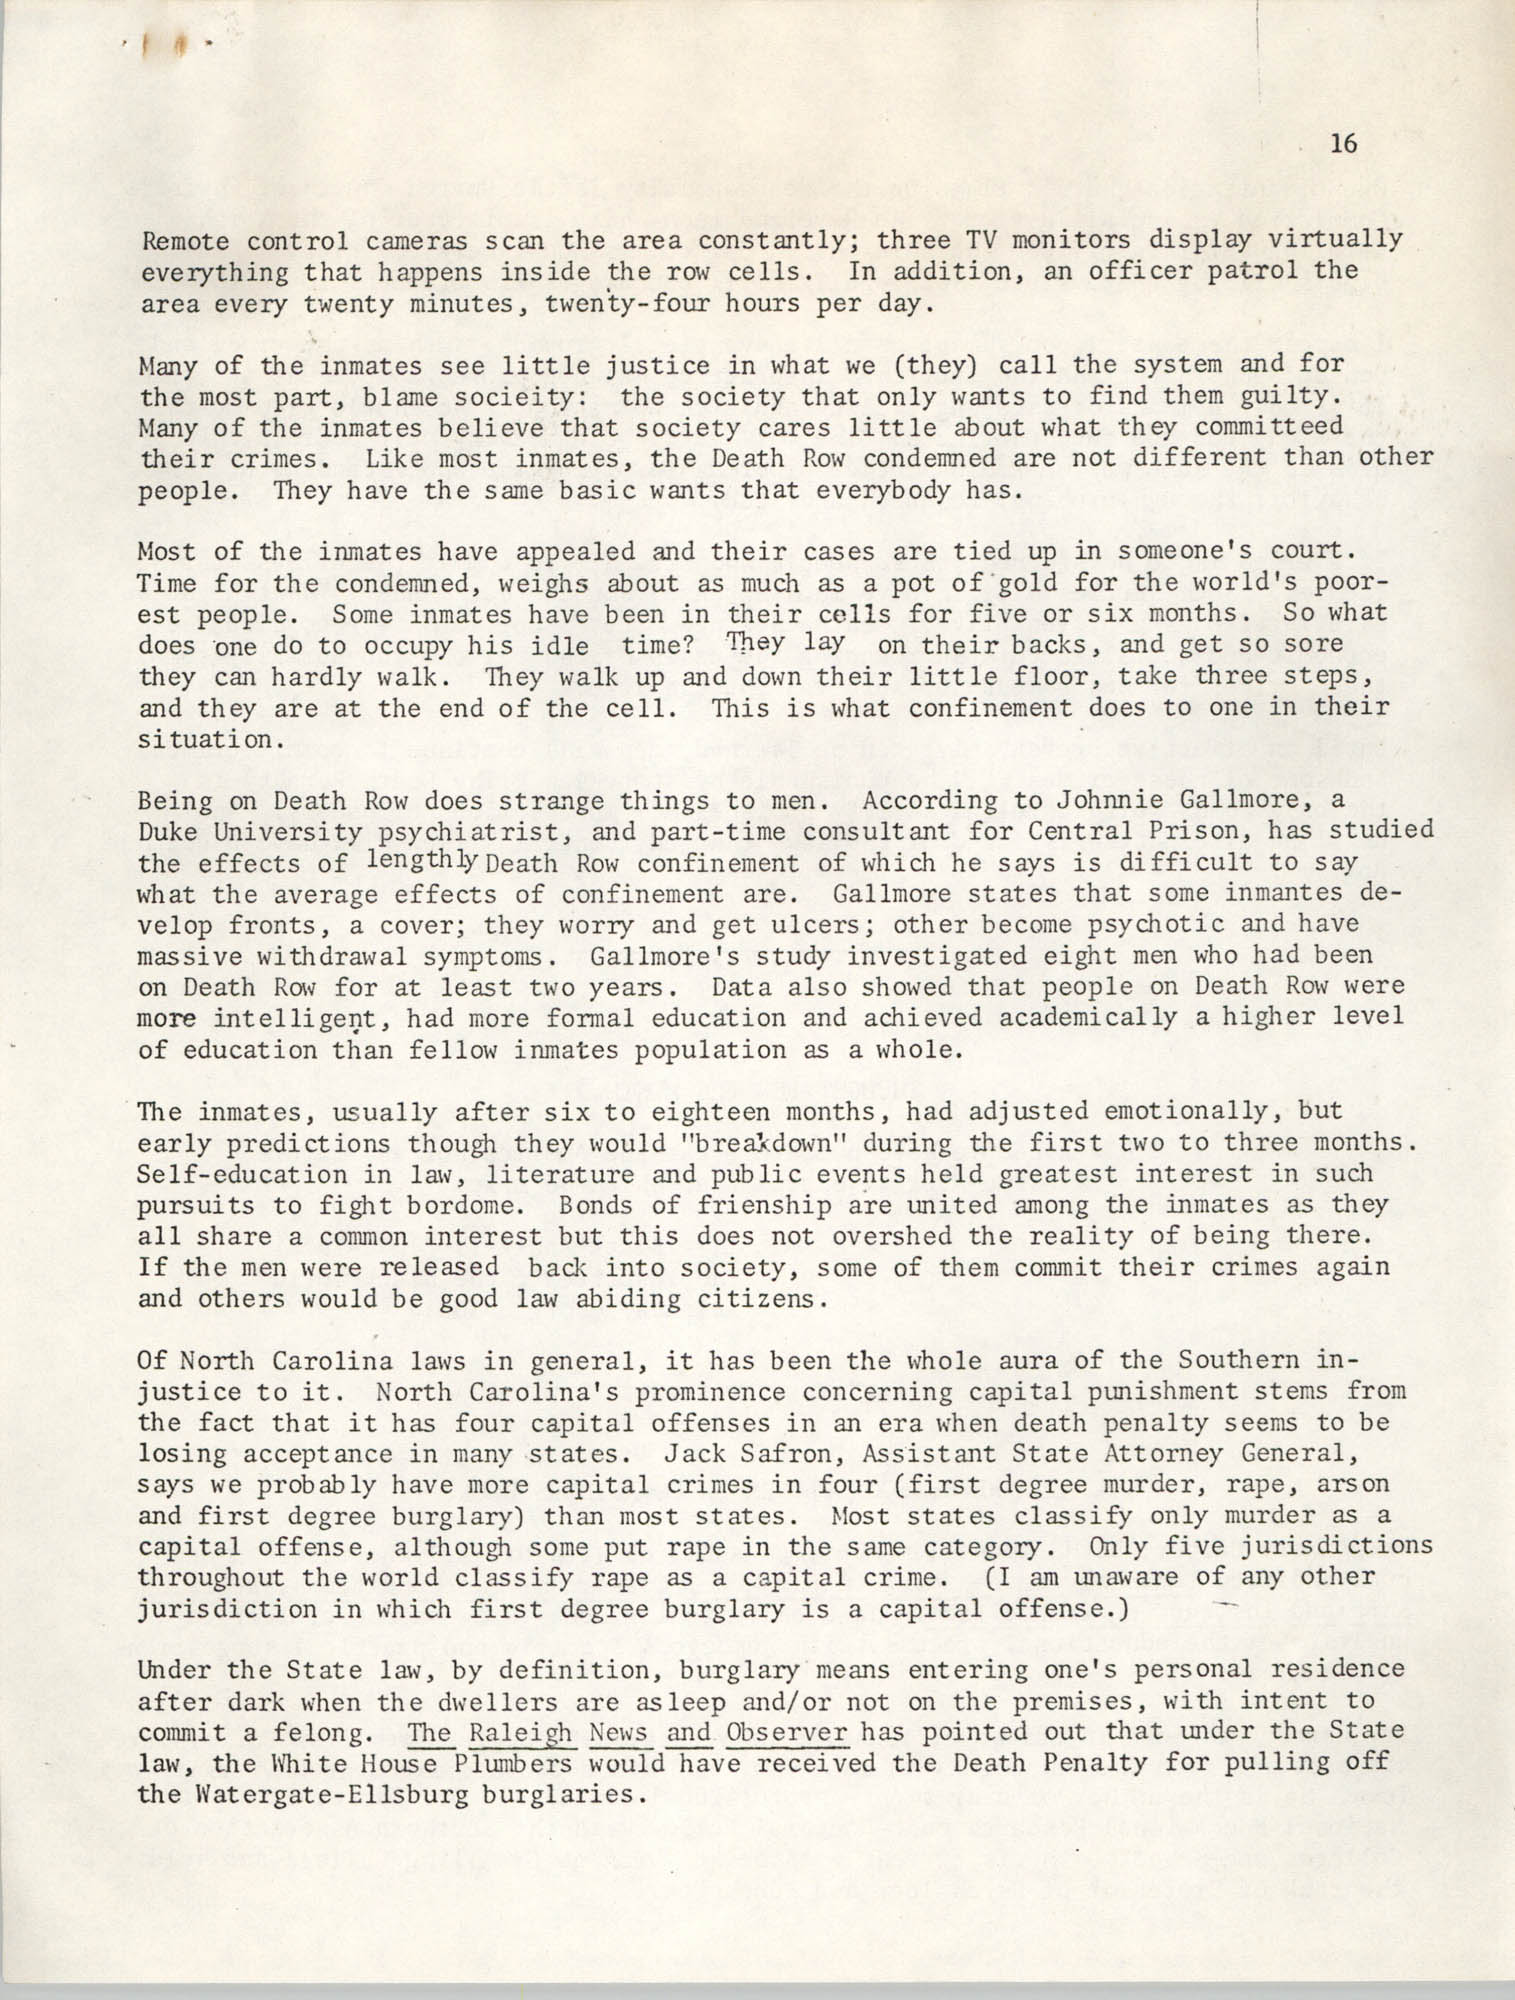 SHARE, Volume II, Number 3, March 1974, Page 16